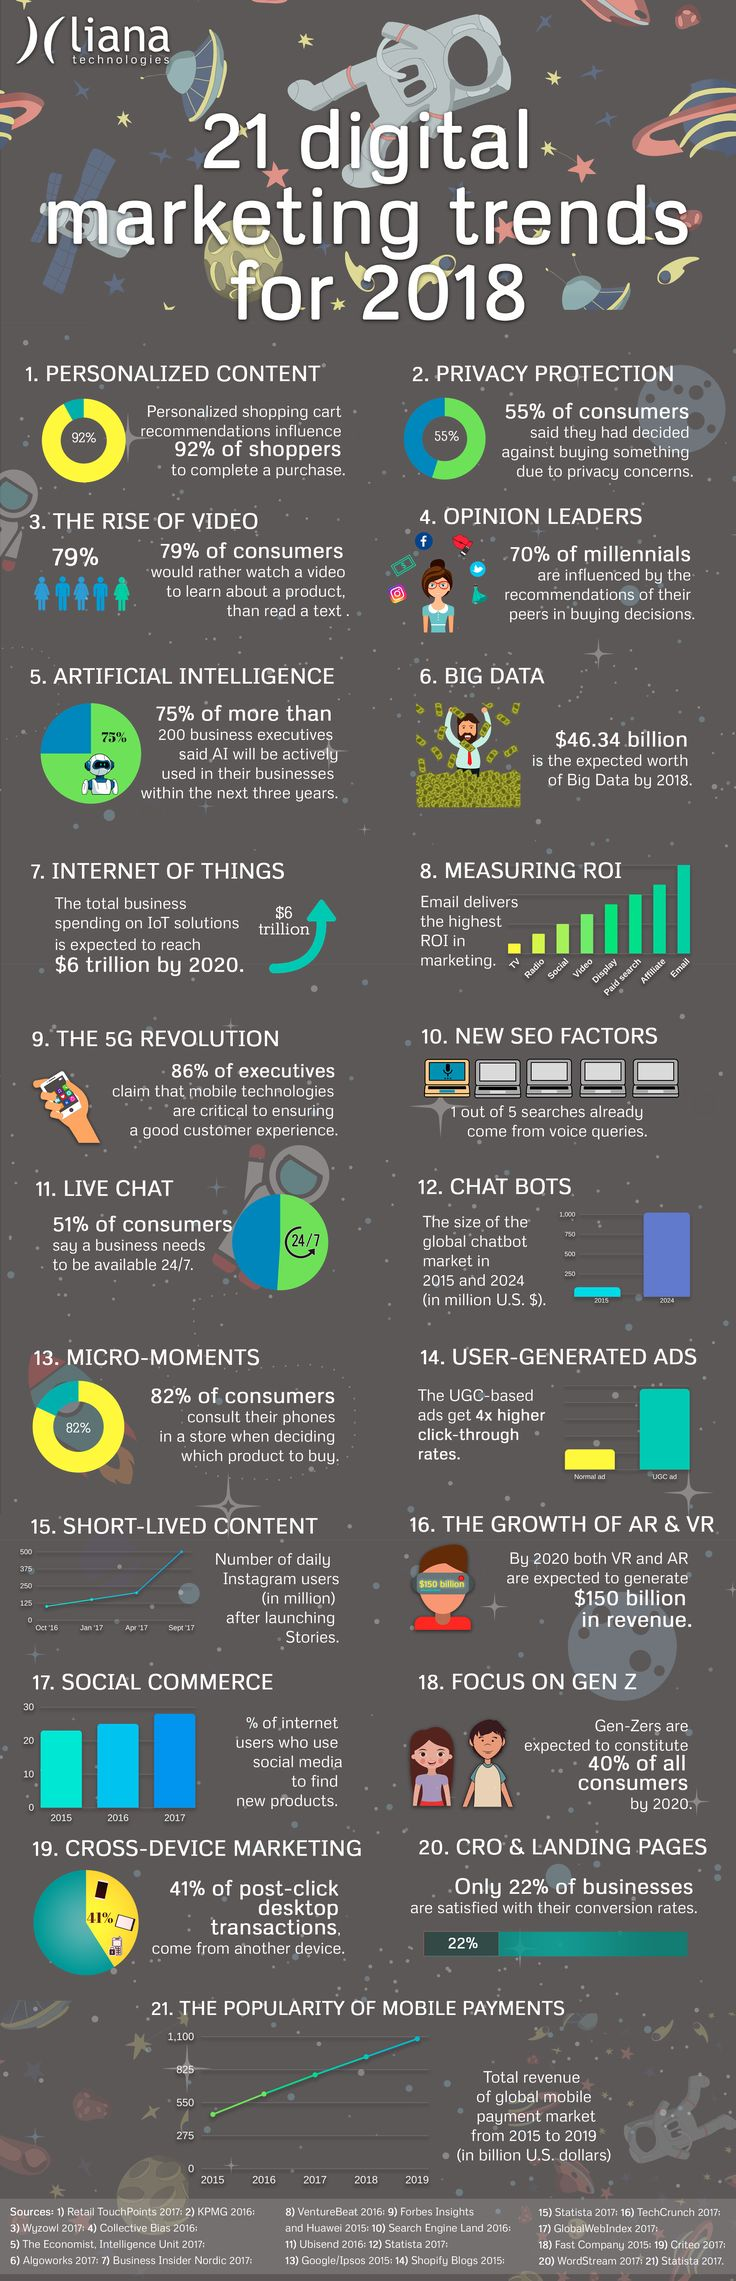 21 Digital Marketing Trends for 2018 - #Infographic